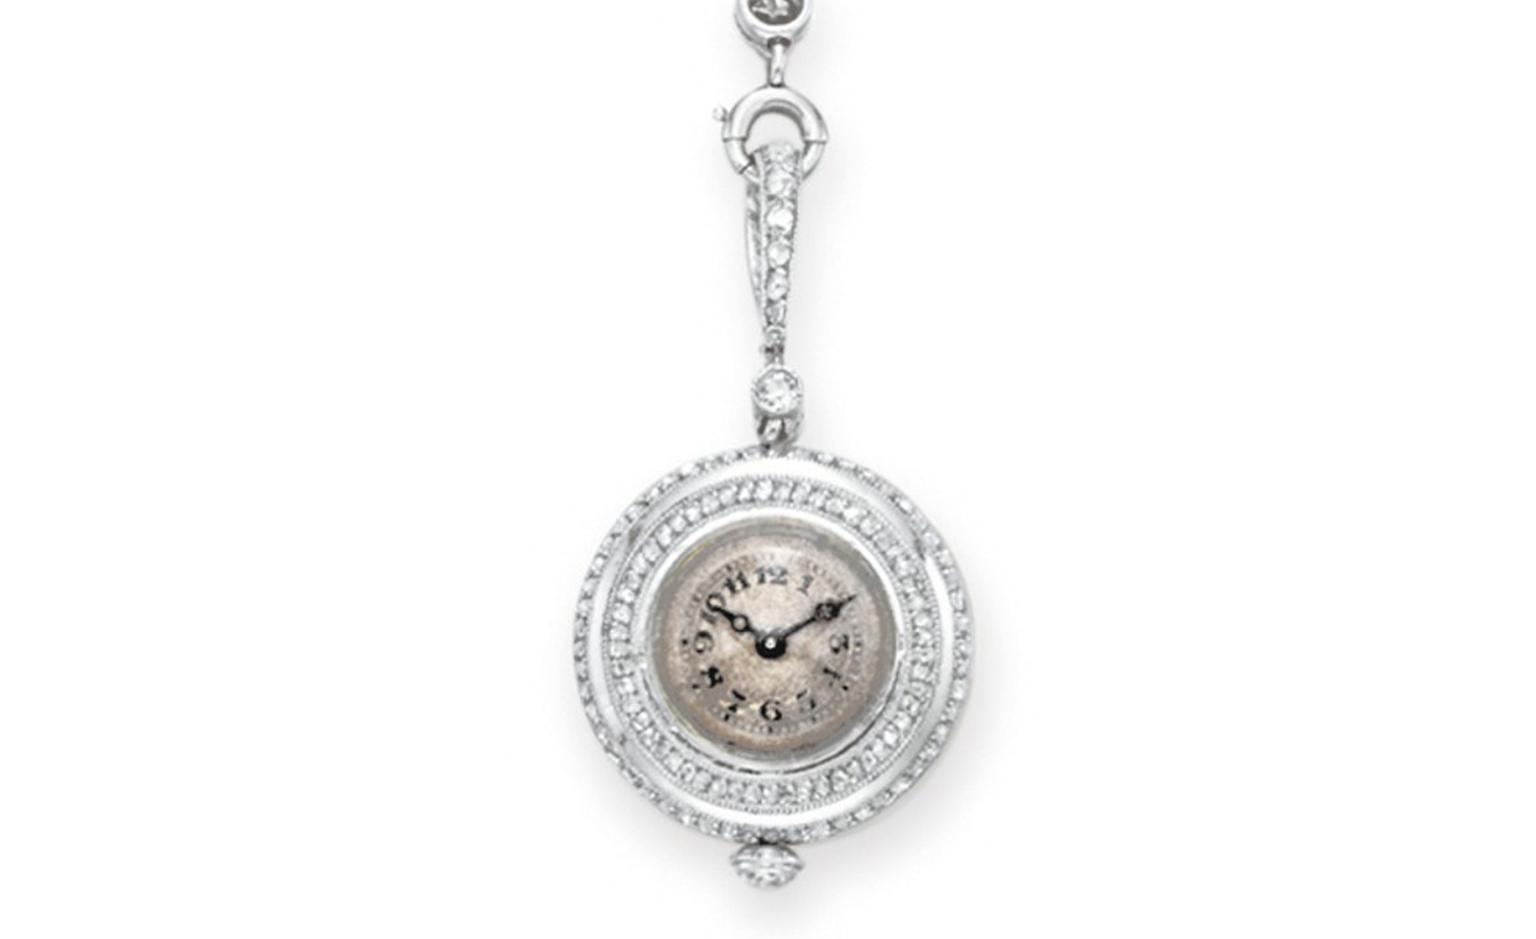 LOT 142 A BELLE EPOQUE PEARL AND DIAMOND PENDANT WATCH NECKLACE S circa 1910, 19 ins., with French assay marks Estimate $15,000-$20,000